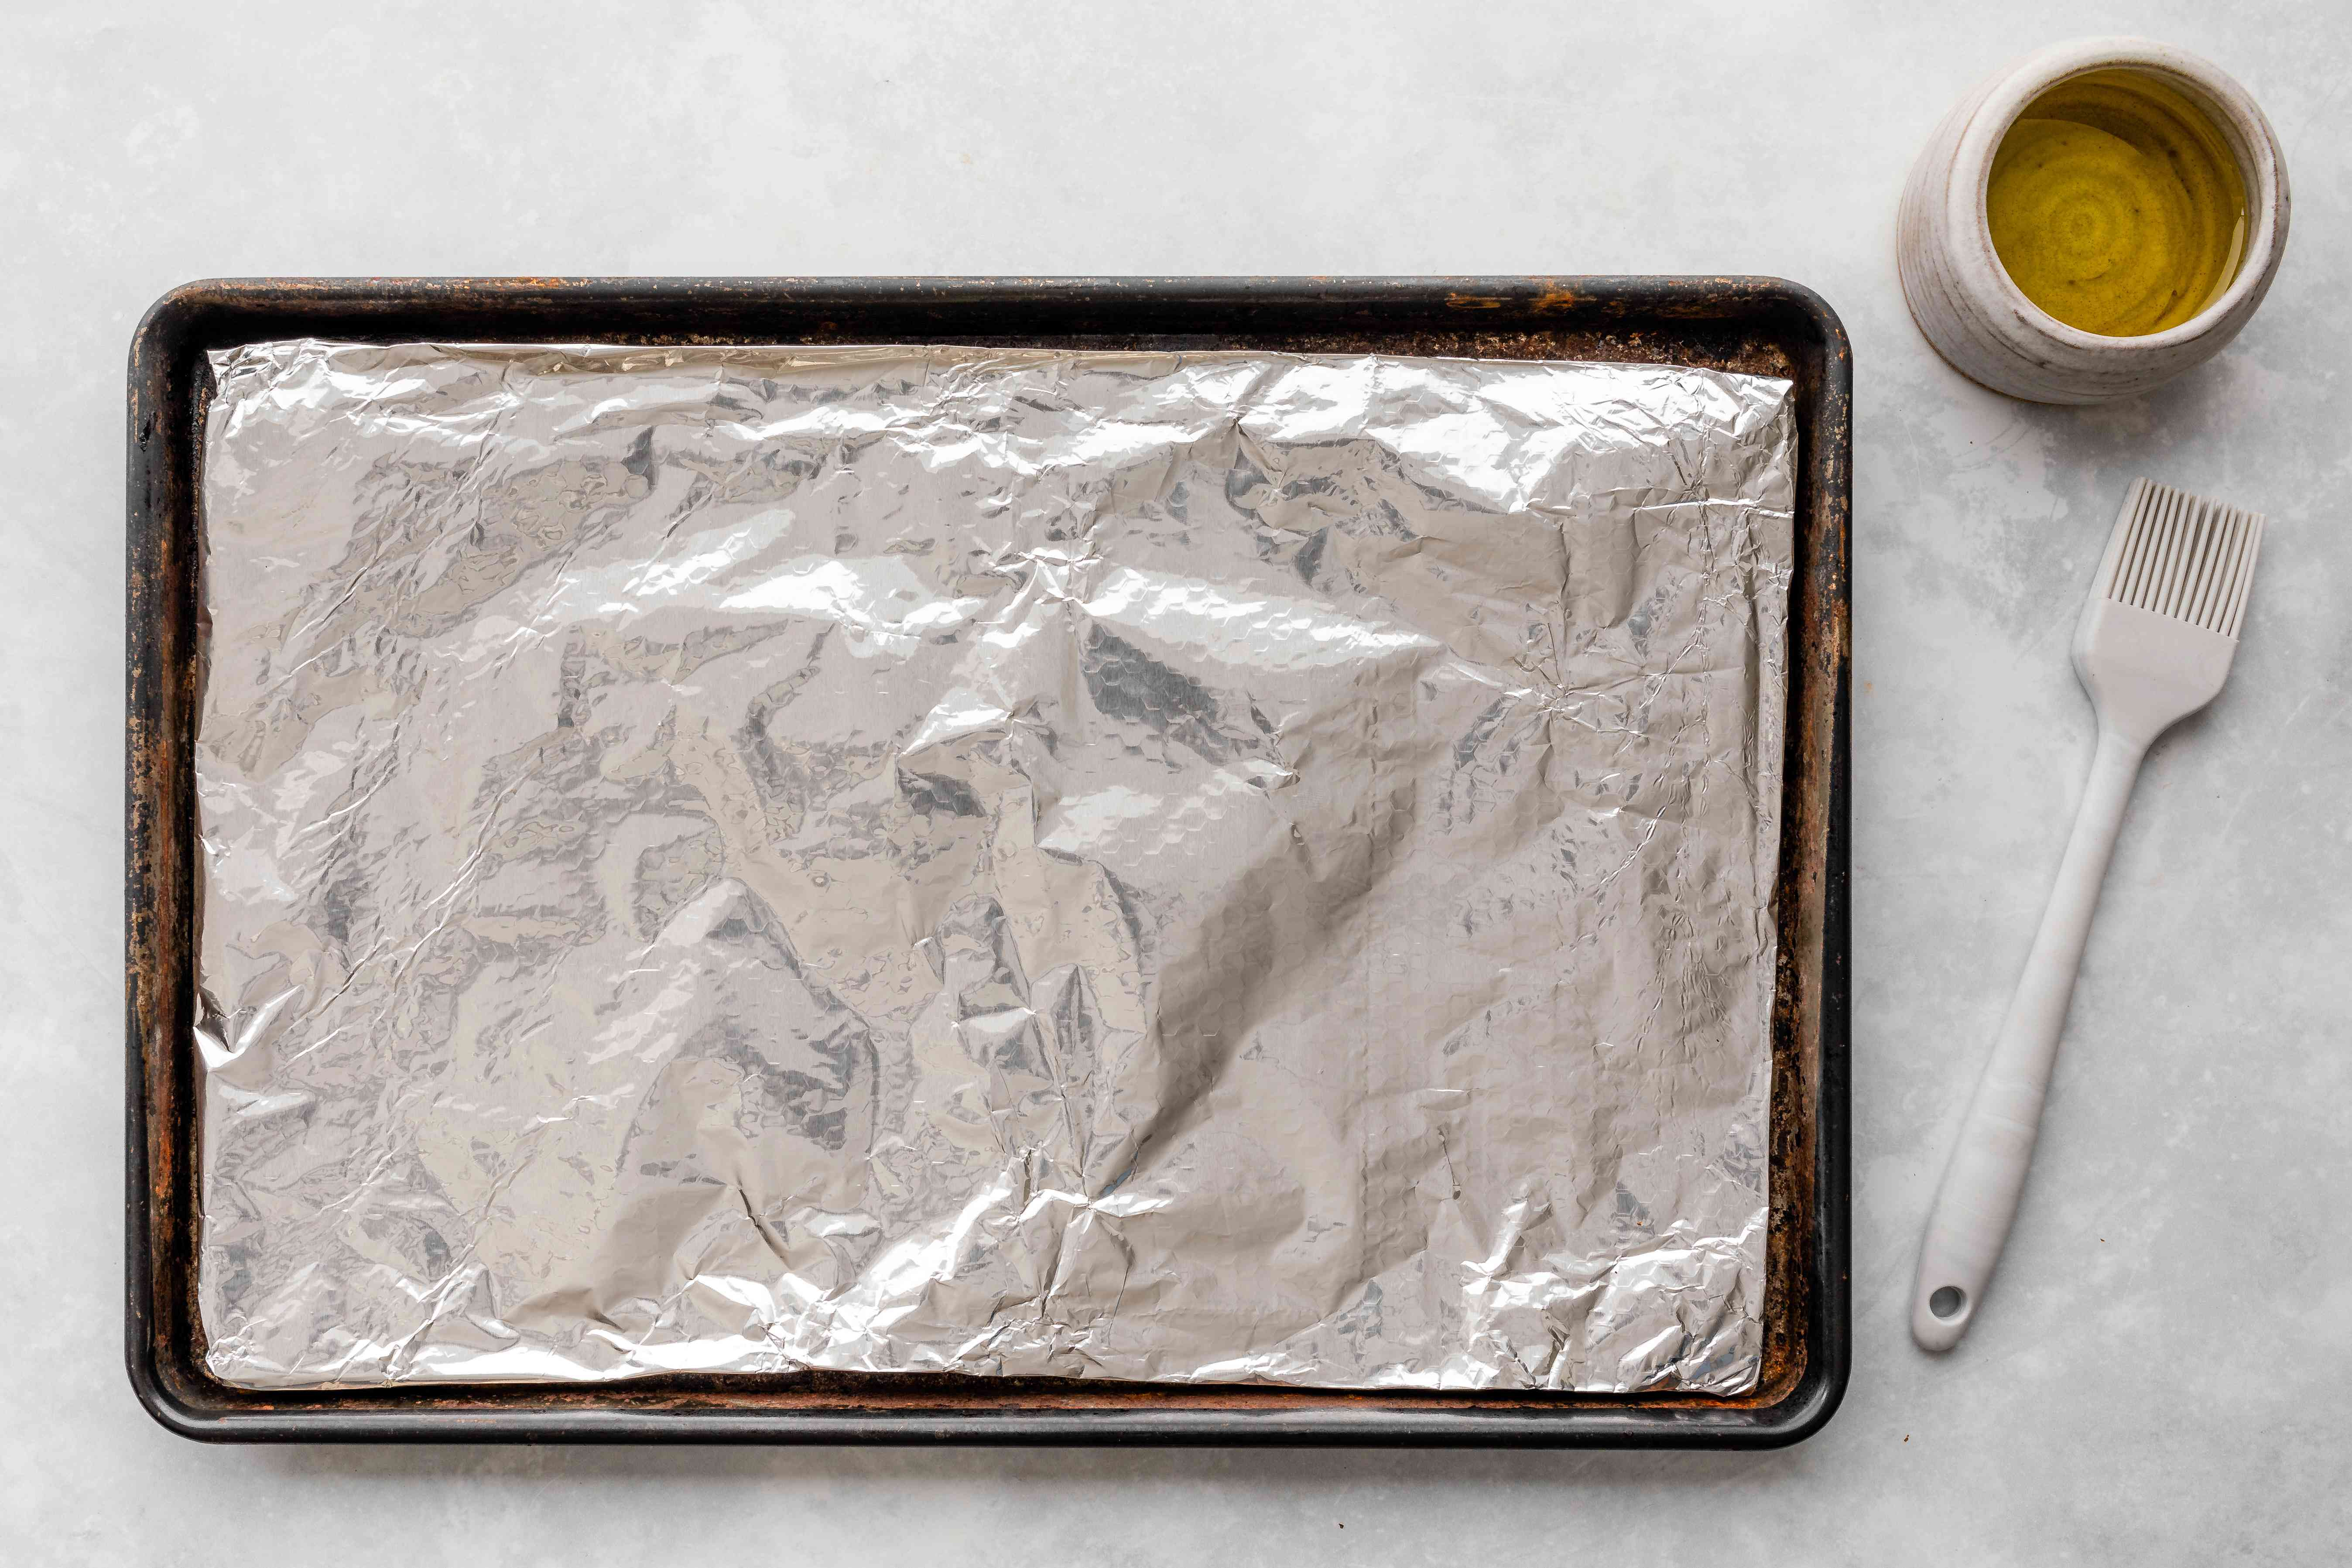 Line a pan with foil